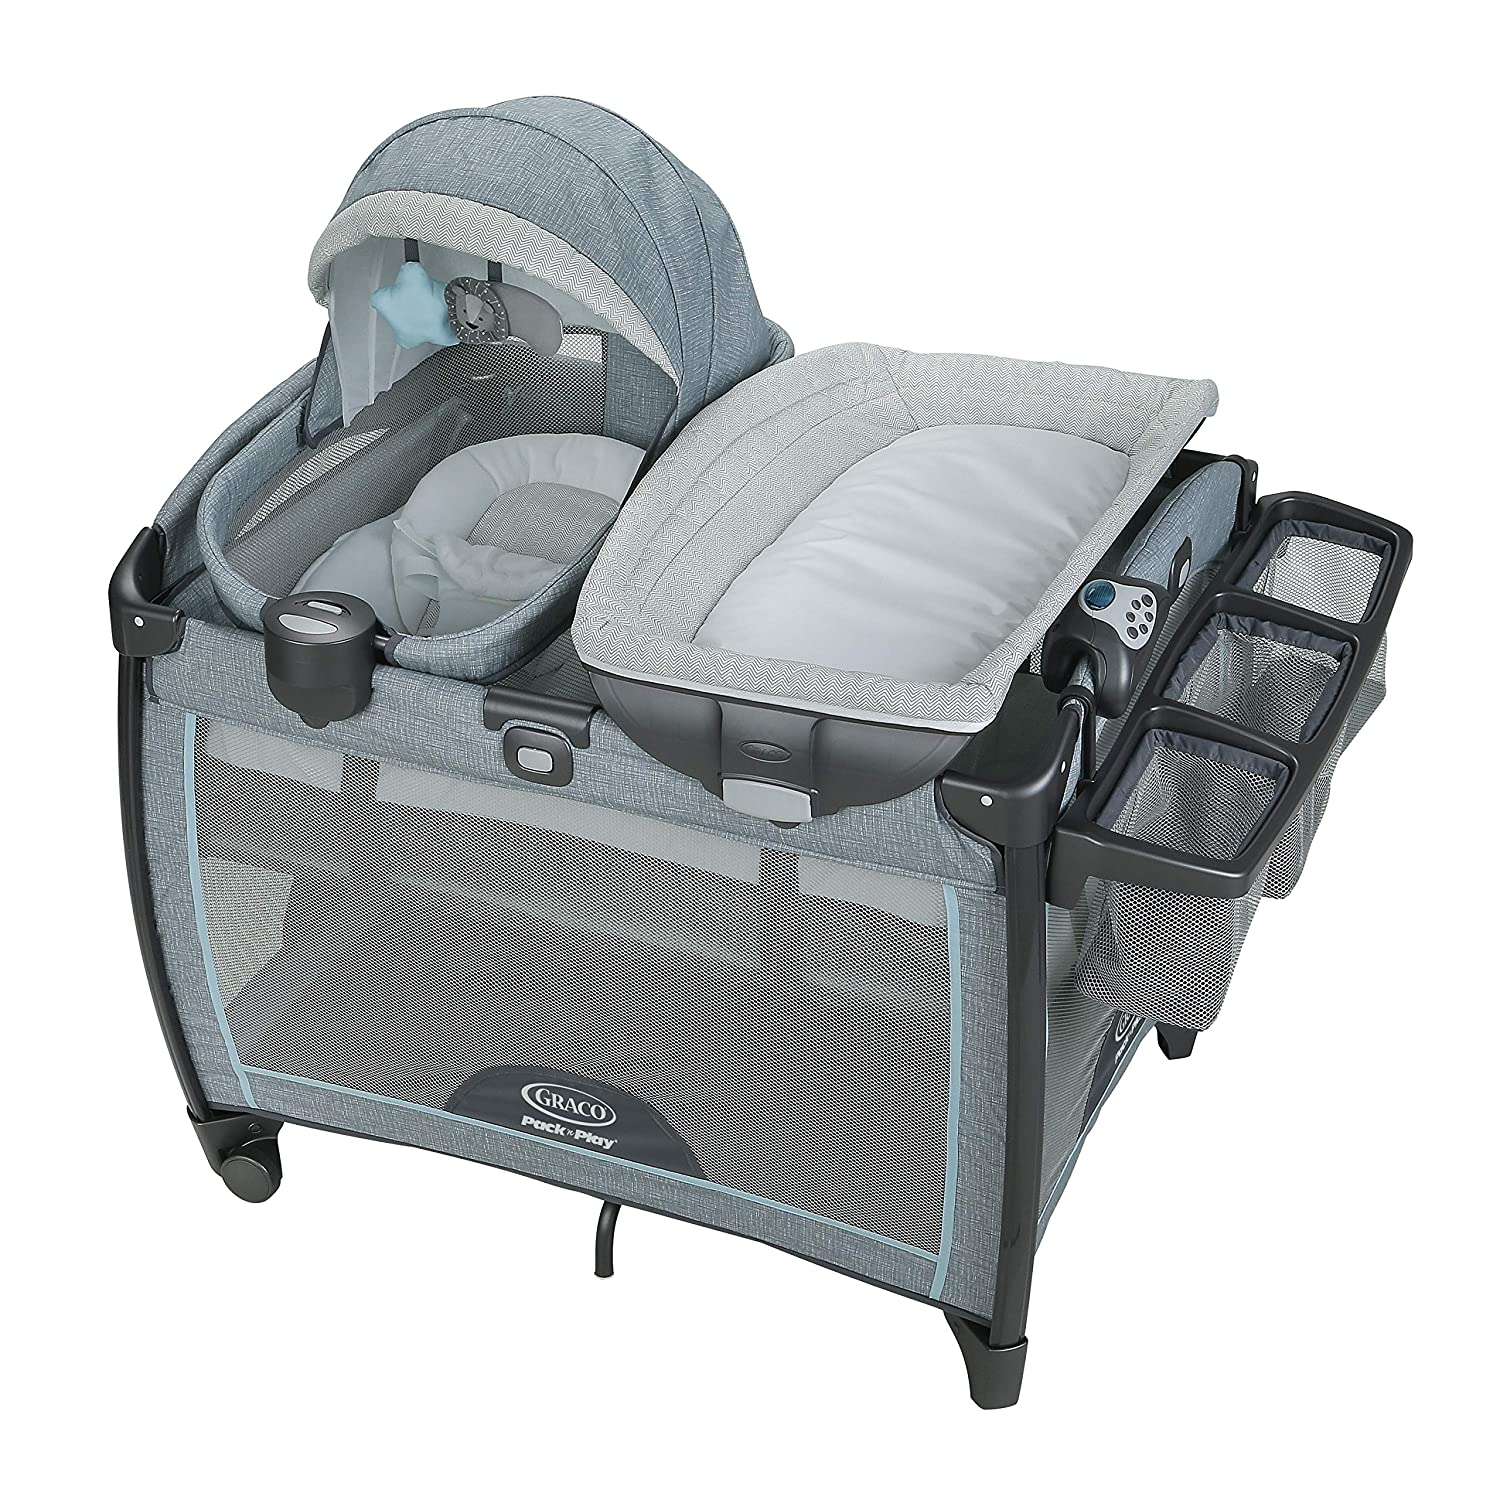 Graco Pack n Play Day2Dream Playard Includes Portable Napper, Full-Size Infant Bassinet, and Diaper Changer, Layne